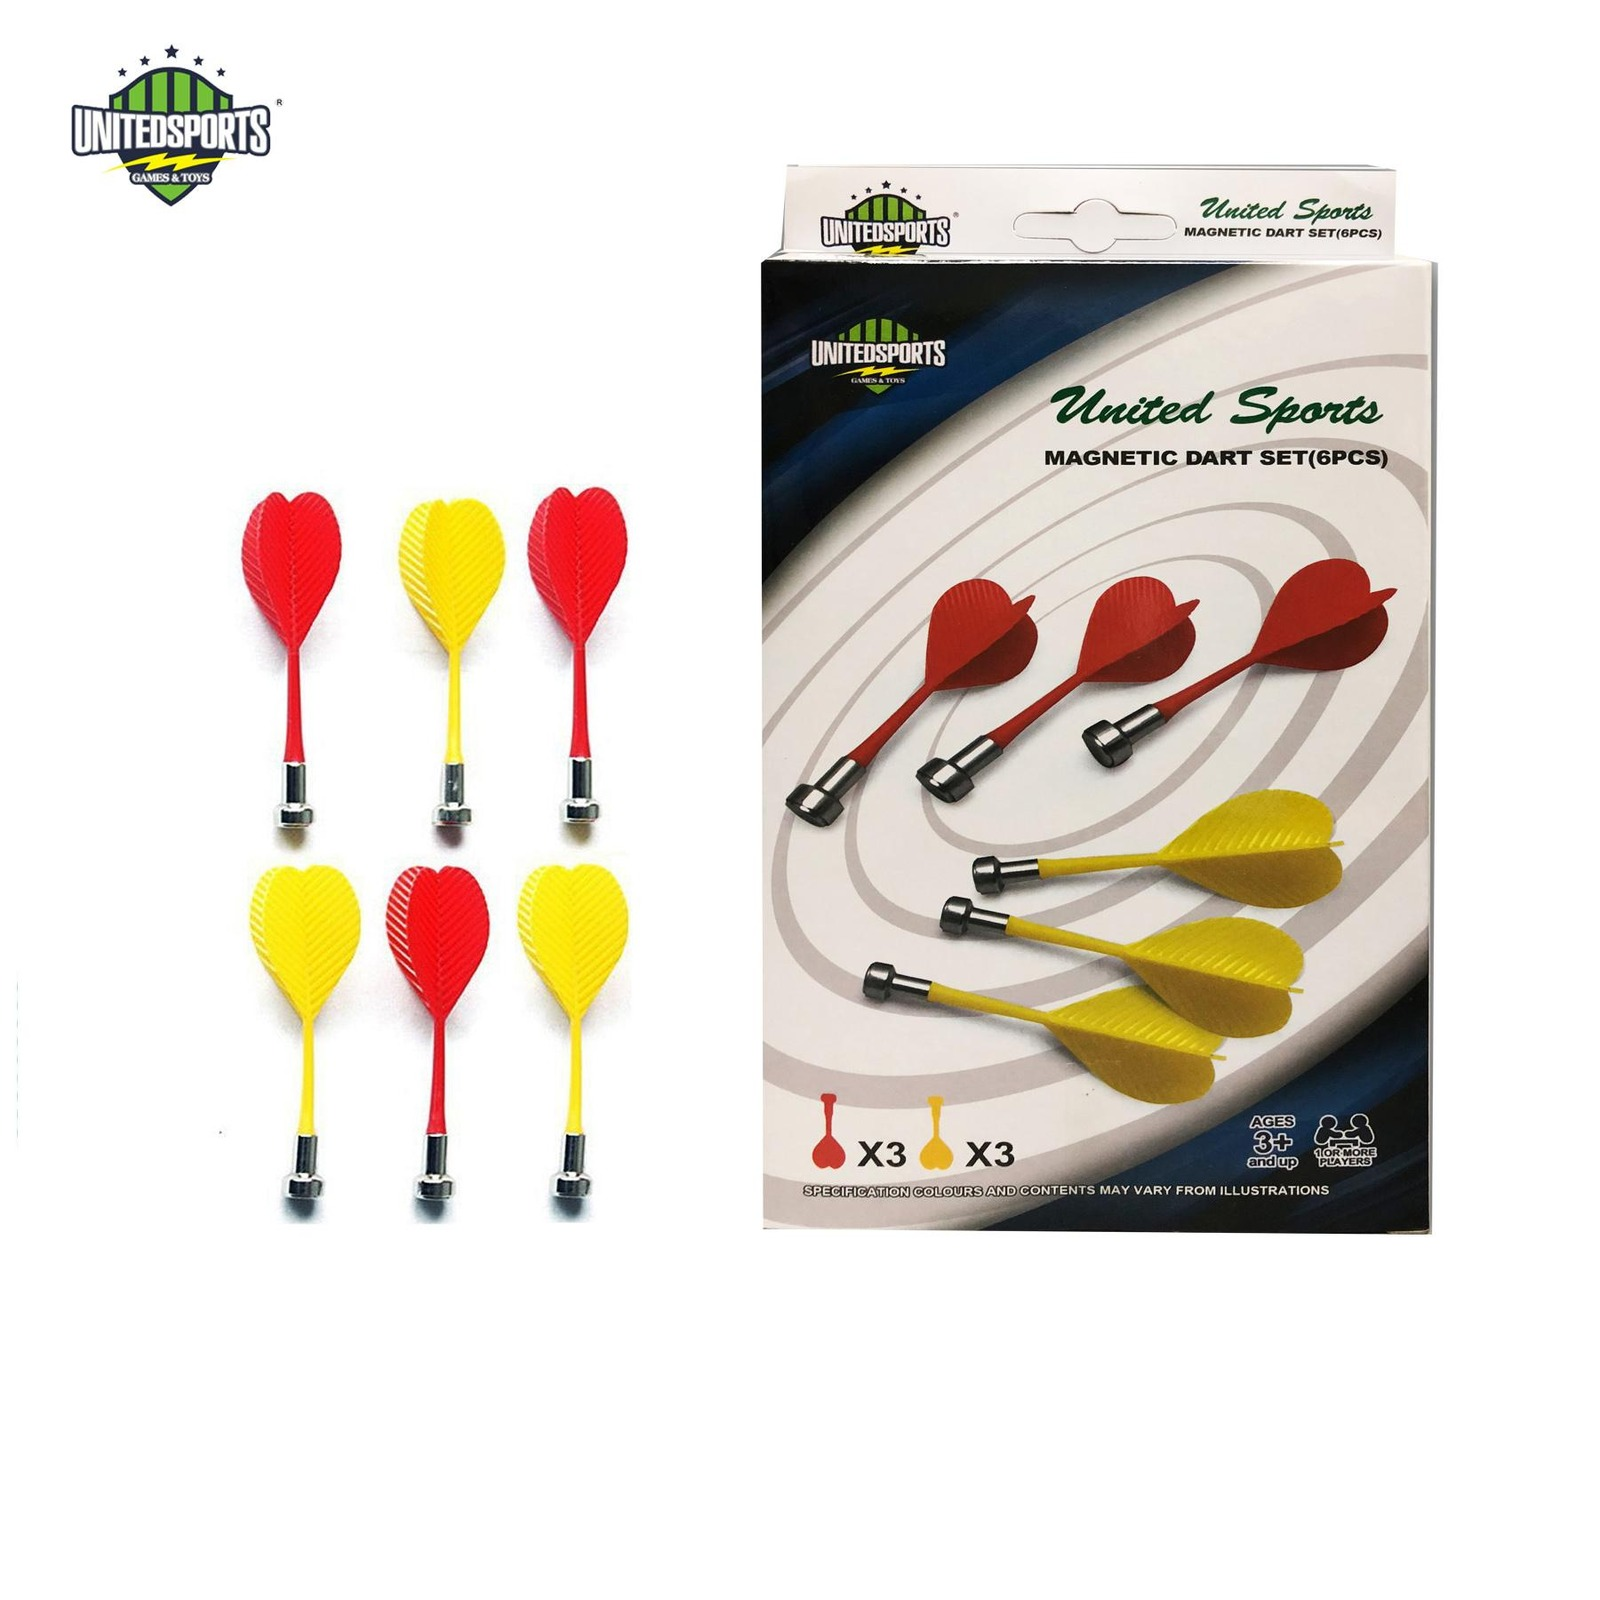 United Sports Magnetic Dart, 6 pcs in a pack